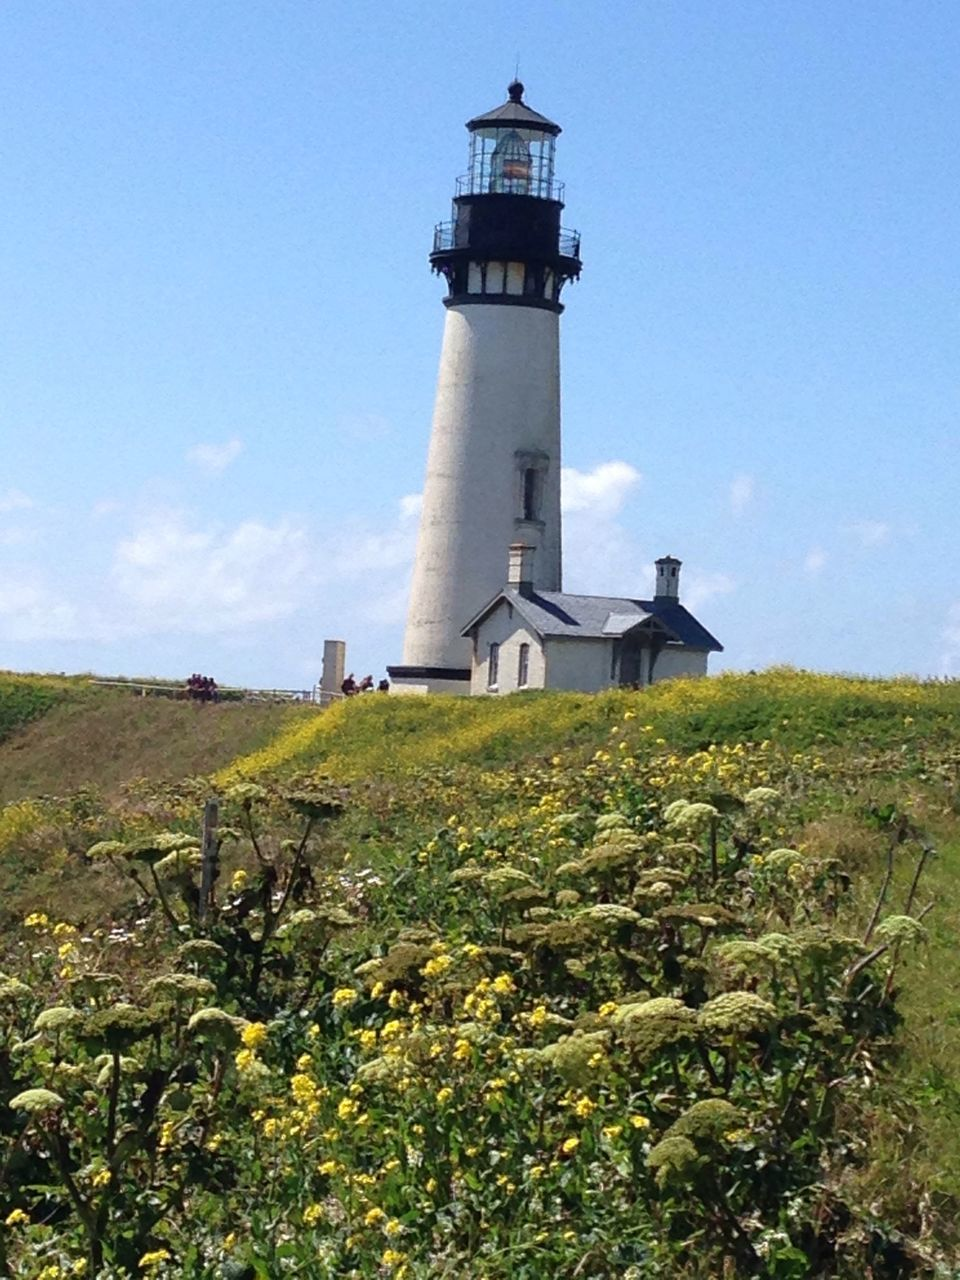 lighthouse, architecture, direction, landscape, field, grass, no people, plant, holiday, nature, sky, day, outdoors